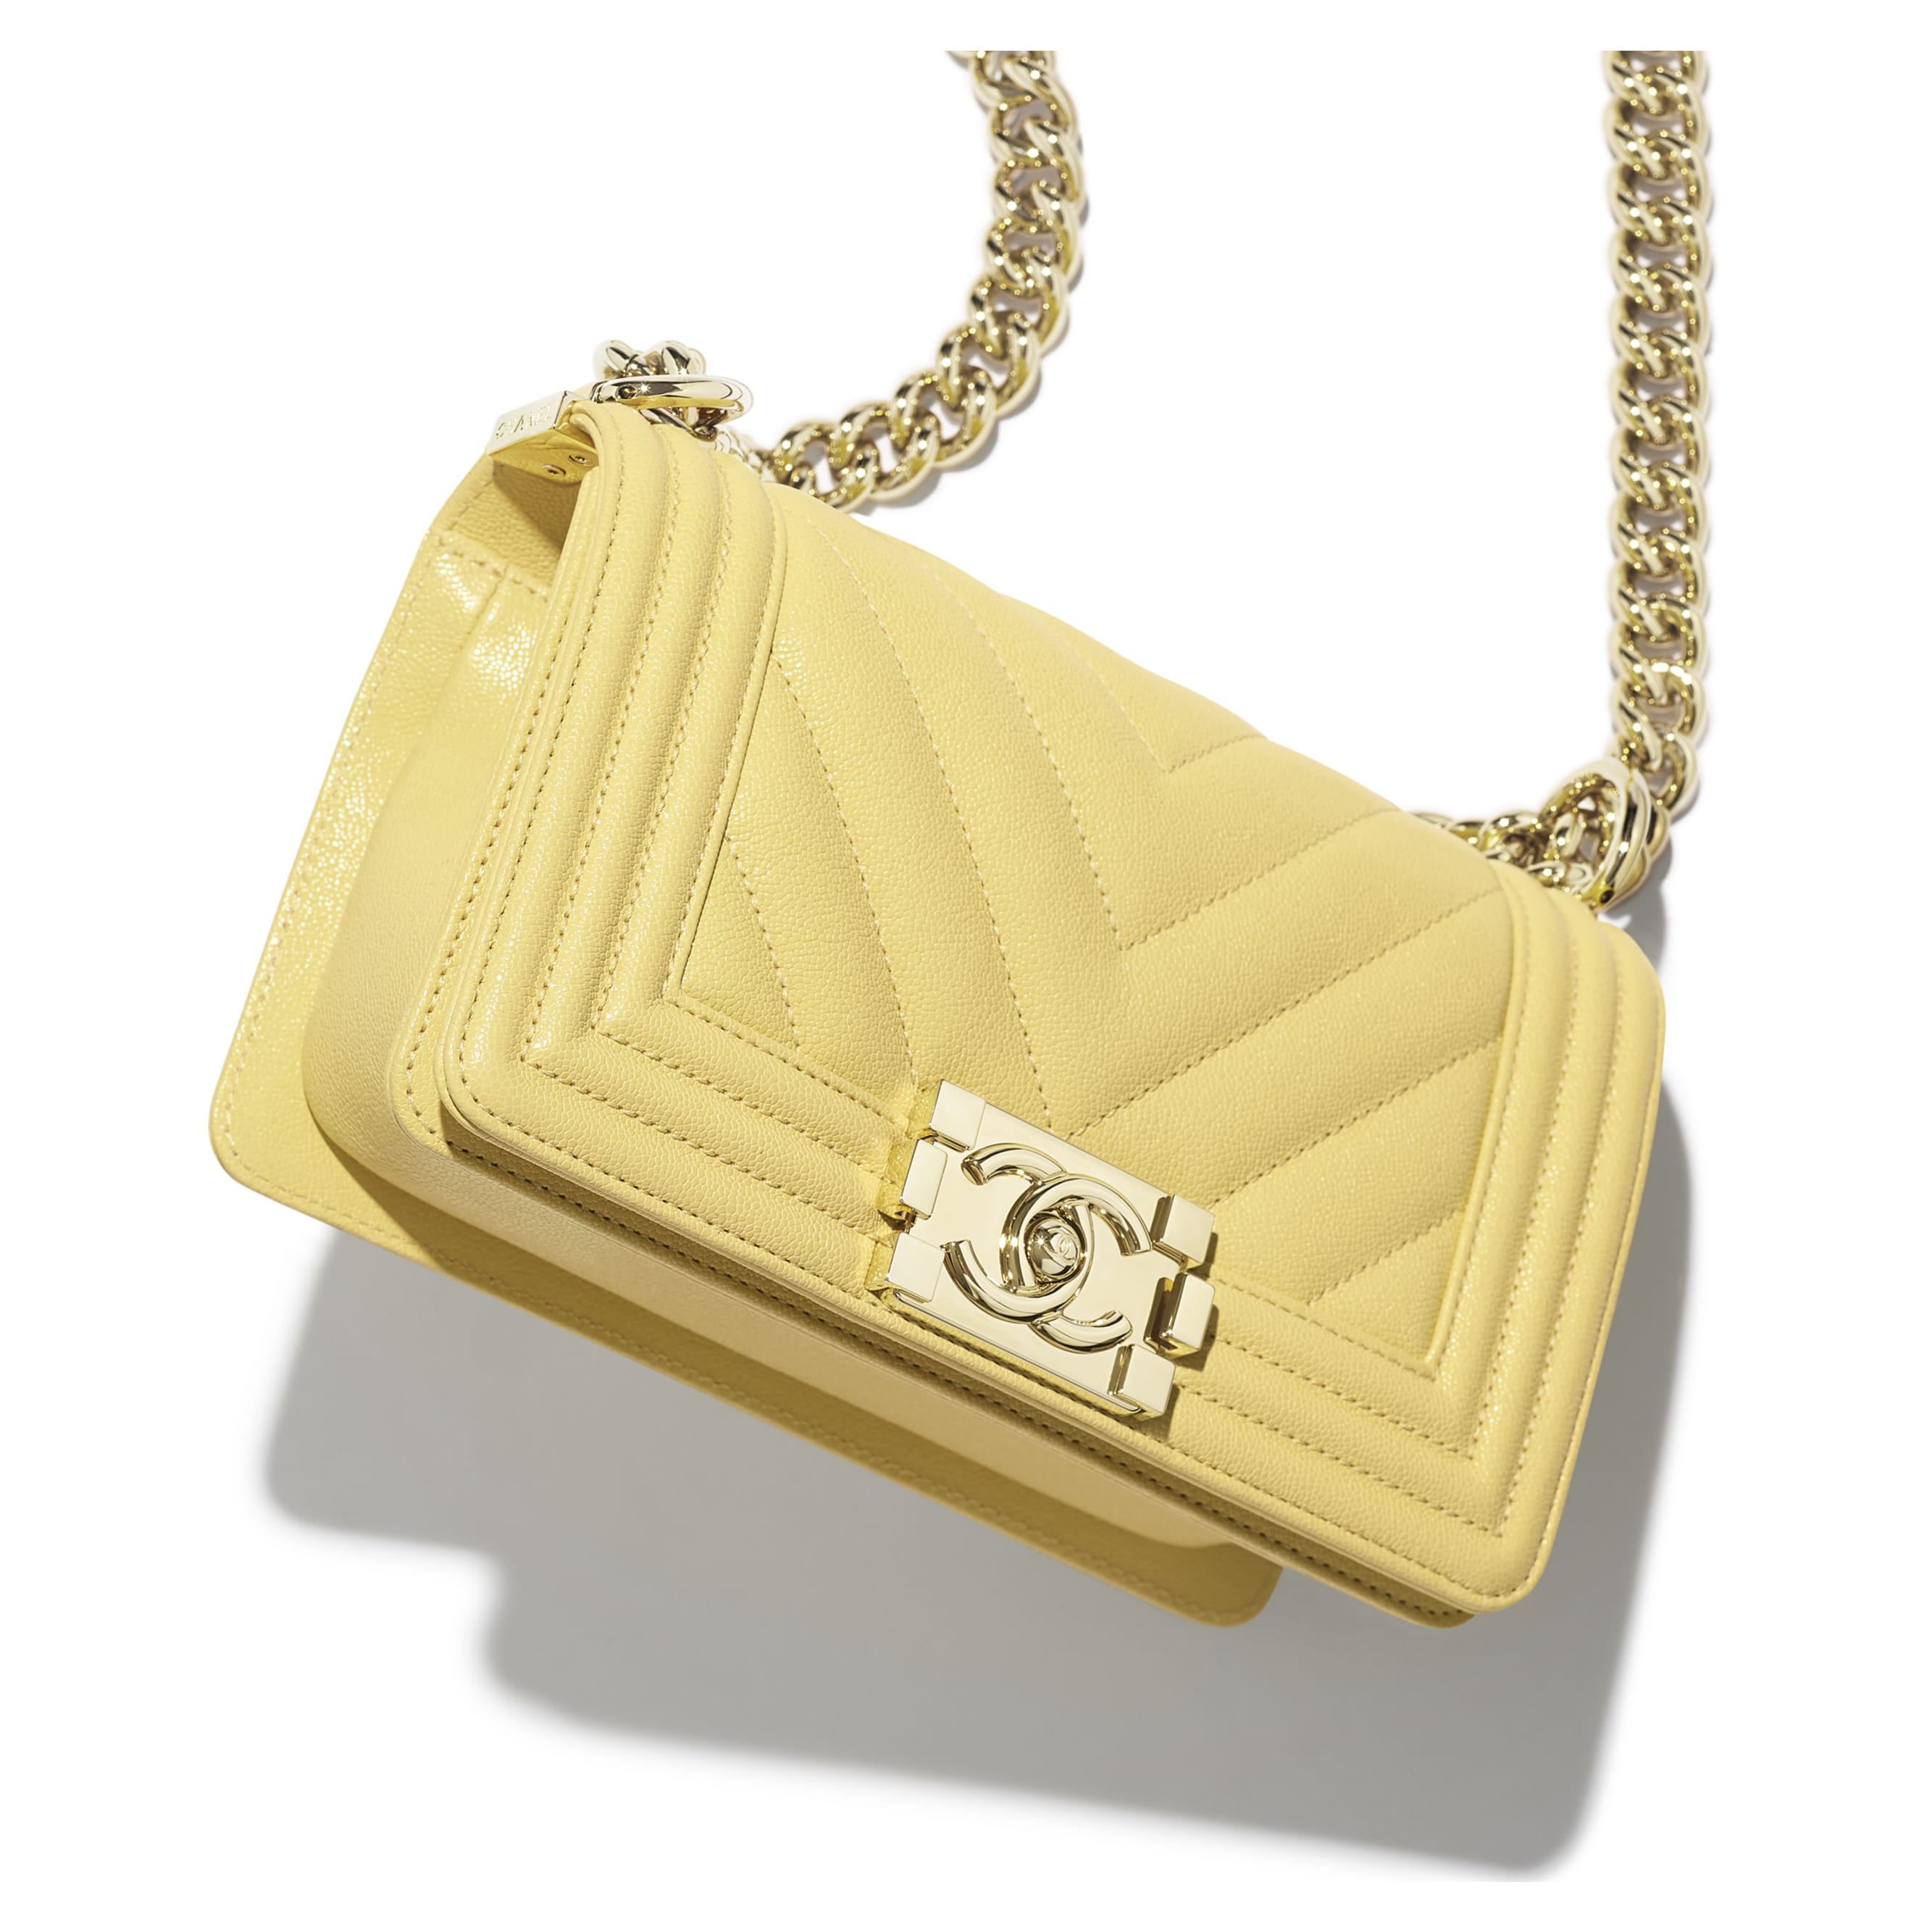 Small BOY CHANEL Handbag - Yellow - Grained Calfskin & Gold-Tone Metal - CHANEL - Extra view - see standard sized version